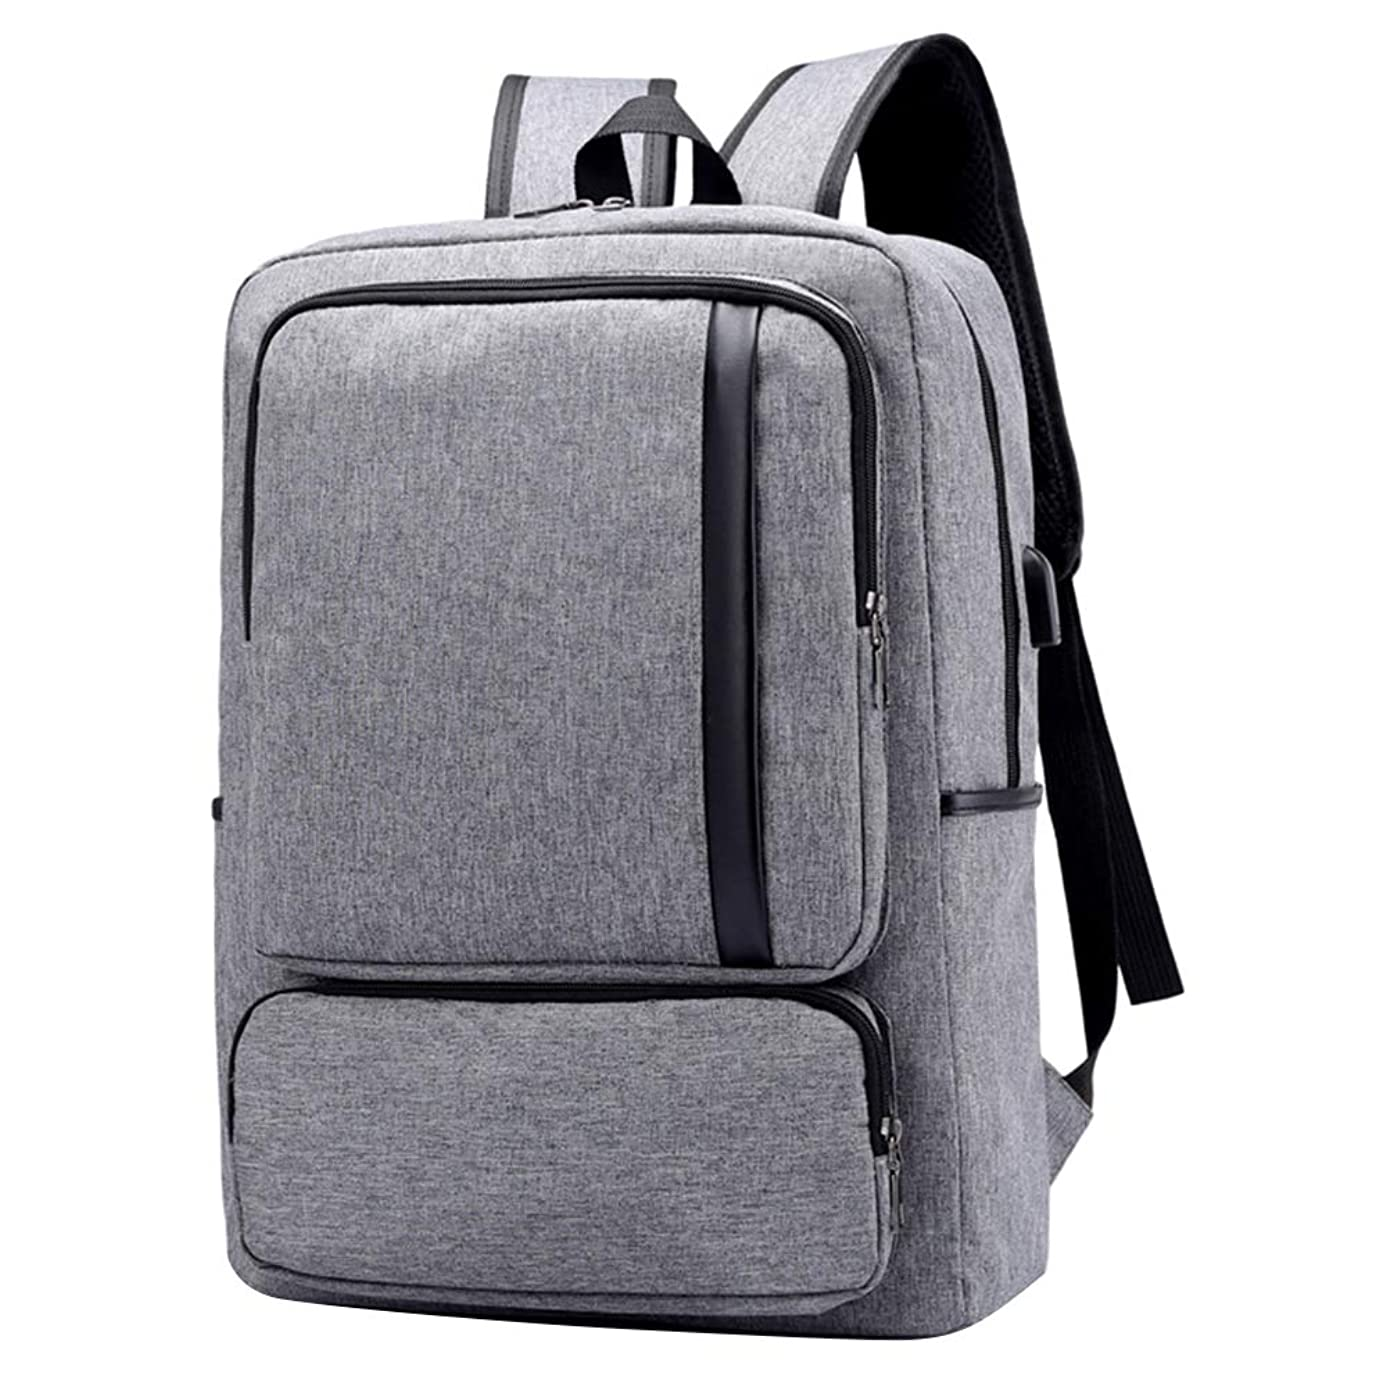 VG Bags Cero Grey 15.6-inch Slim Lightweight Laptop Backpack with USB Charging Port for Acer Chromebook, Spin, Swift, TravelMate, Aspire, Nitro, Predator 14